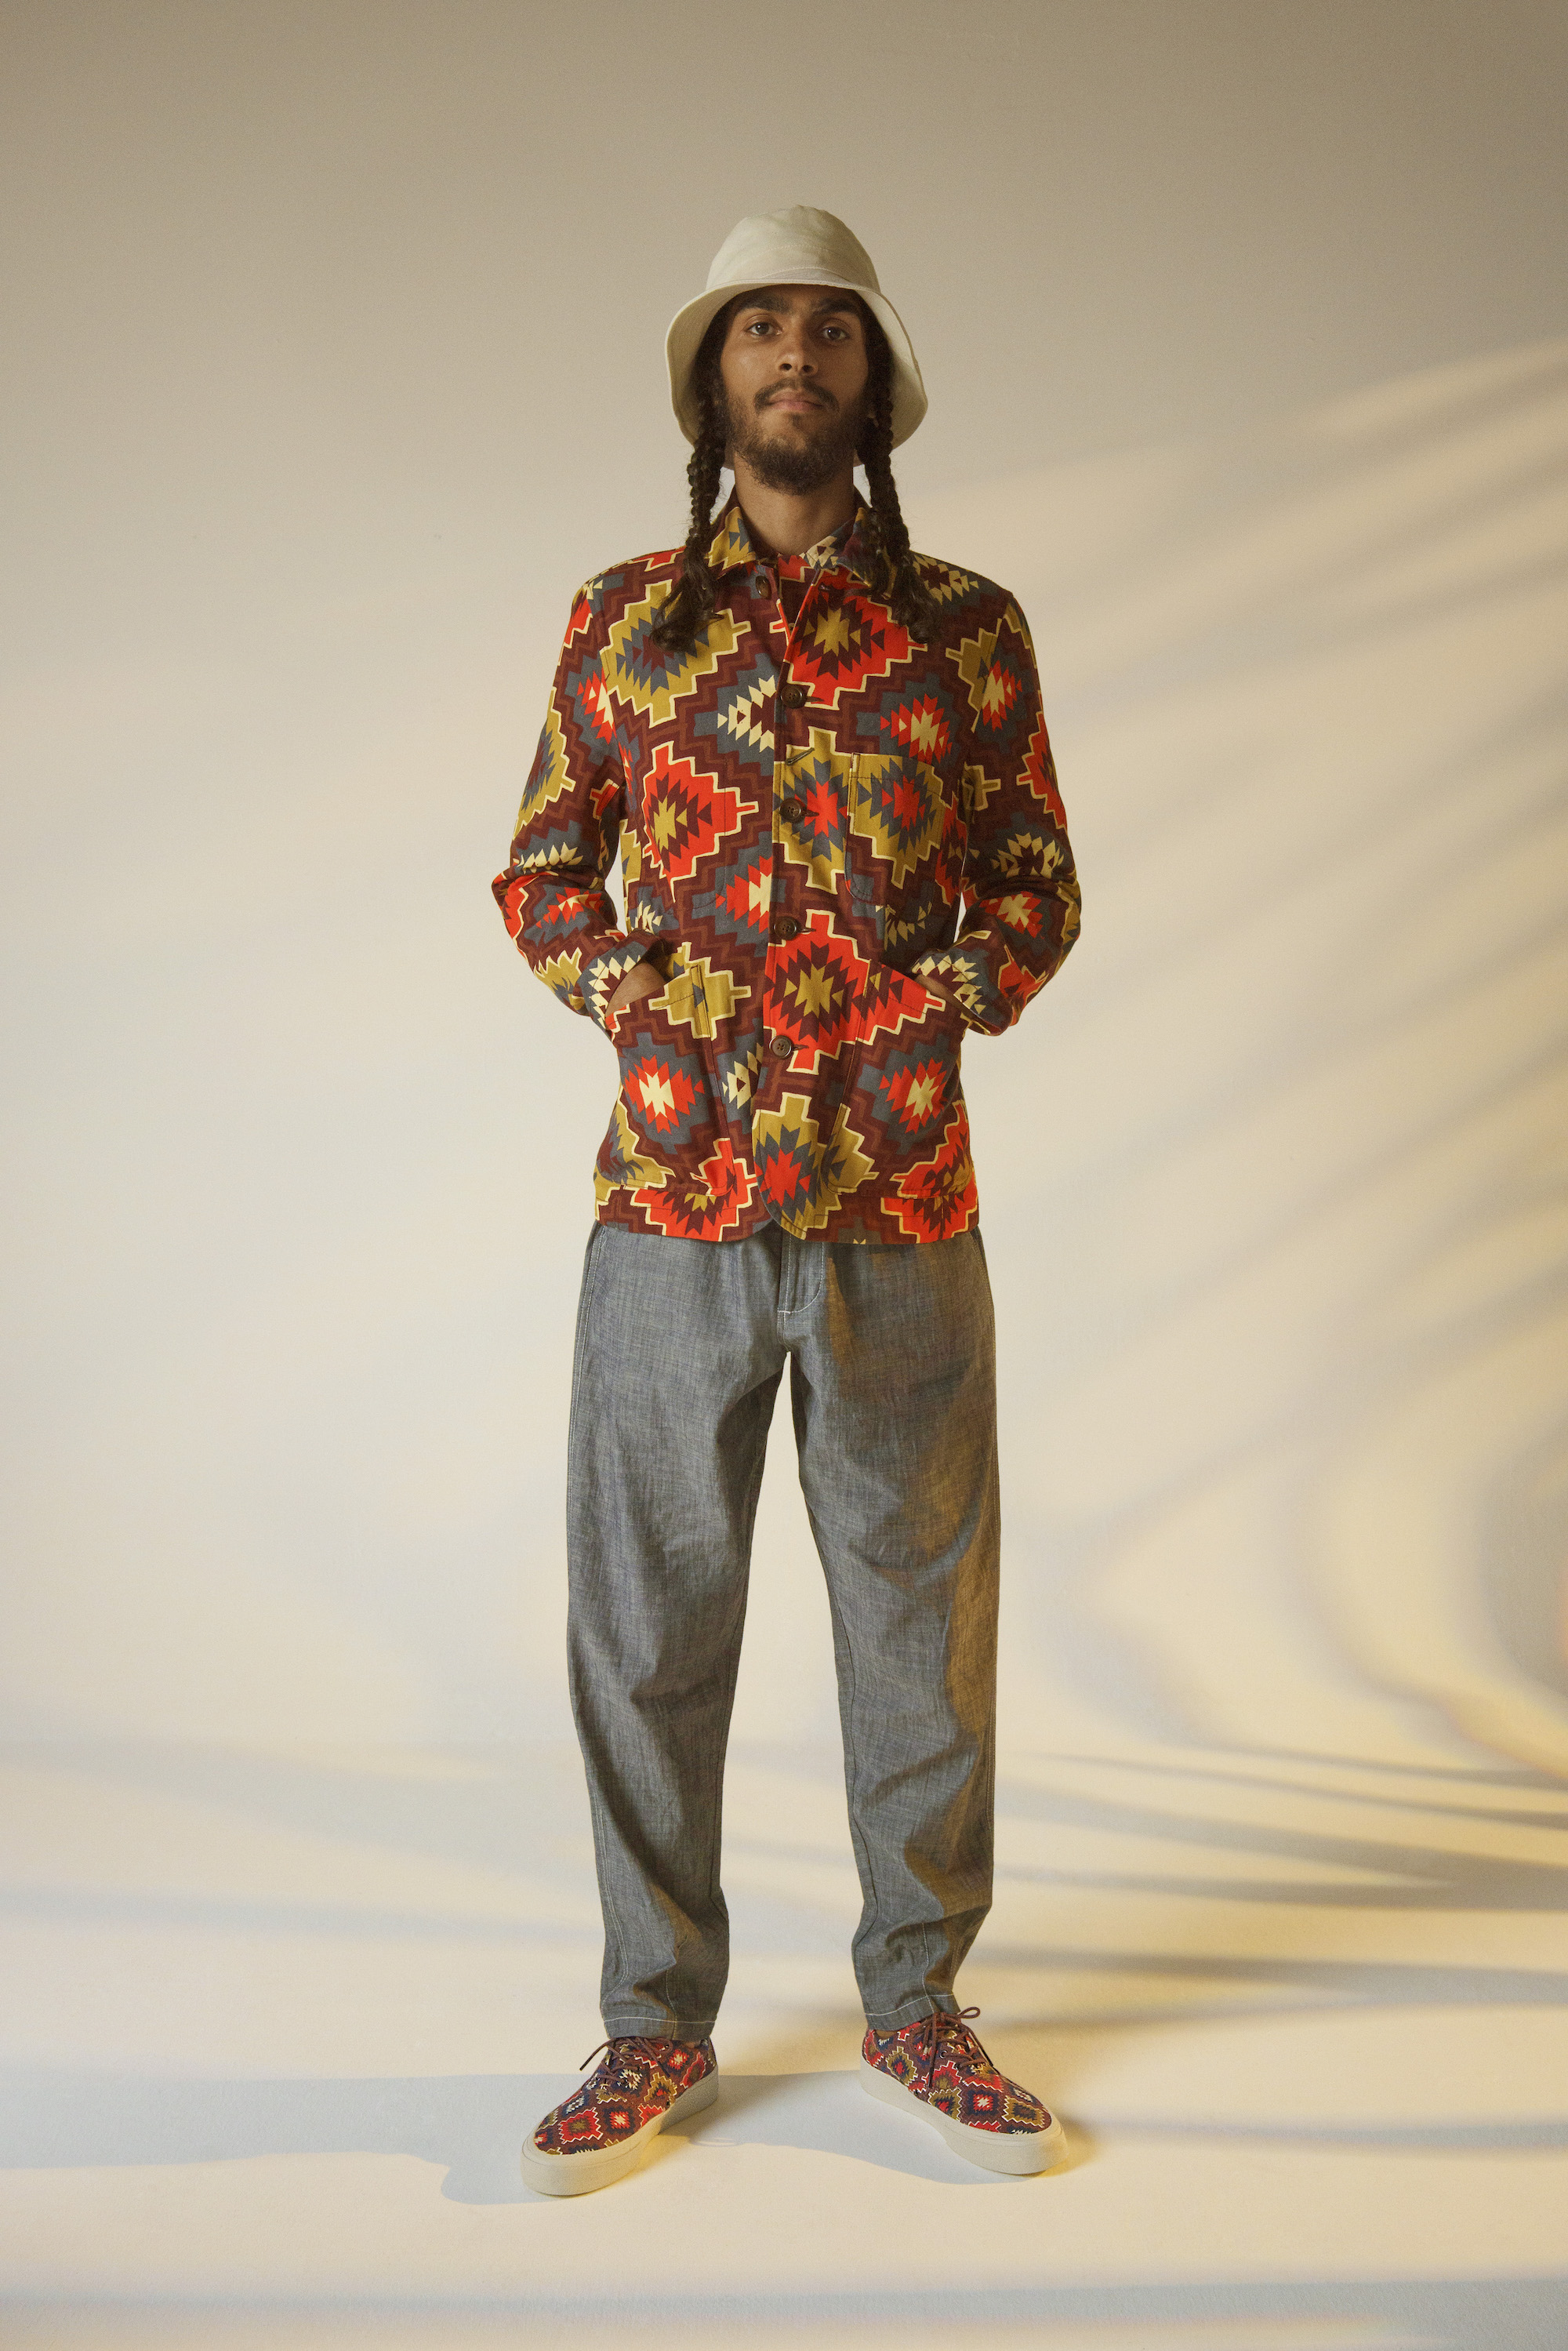 Universal work x sabago collection for SS20 Ikat dye shirt and shoes